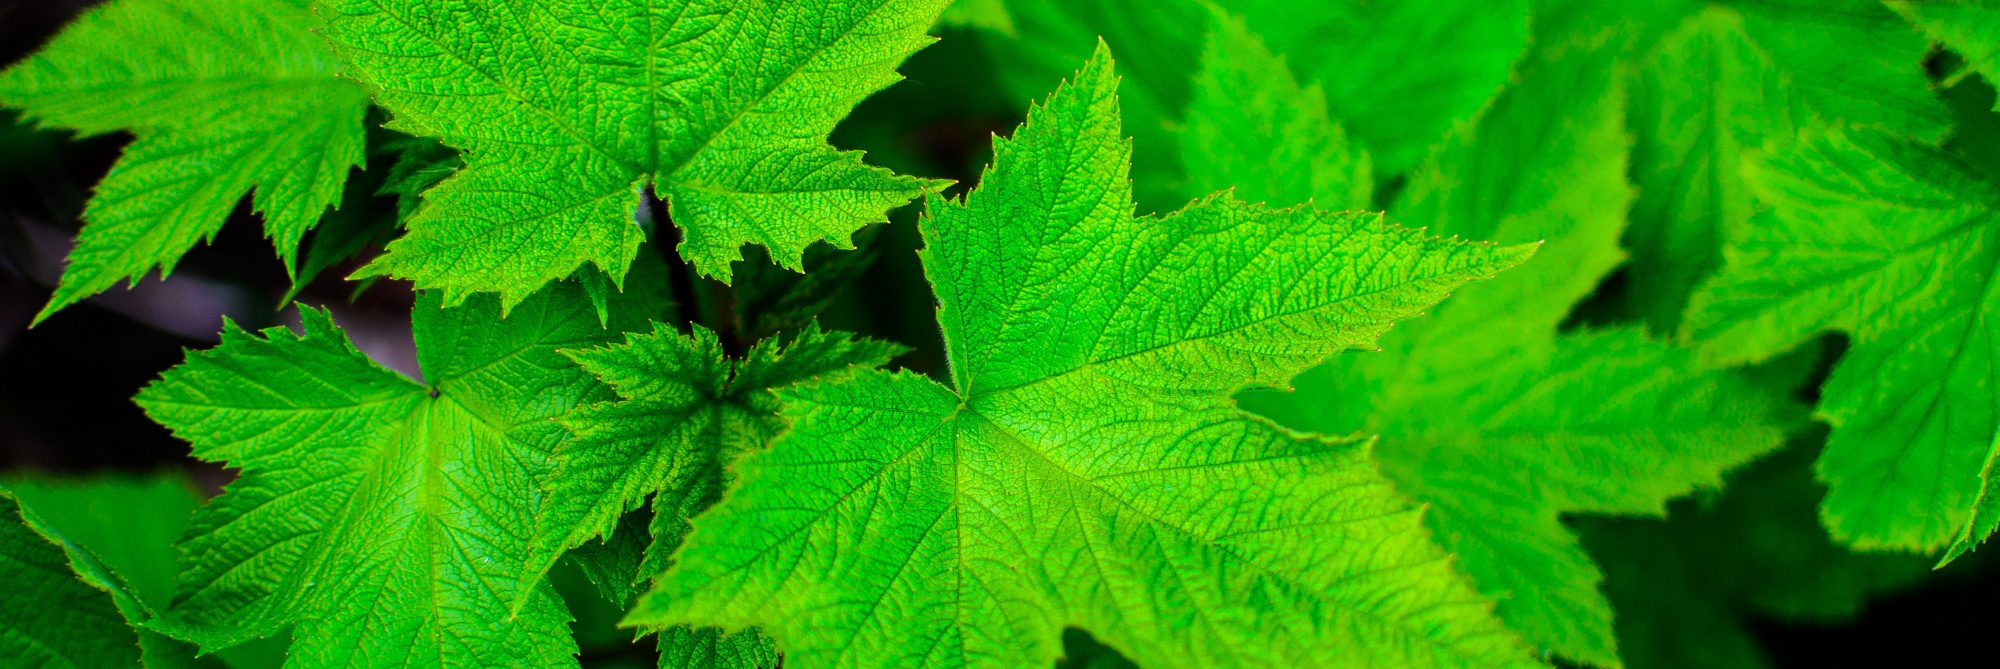 close-up-view-closeup-green-21392